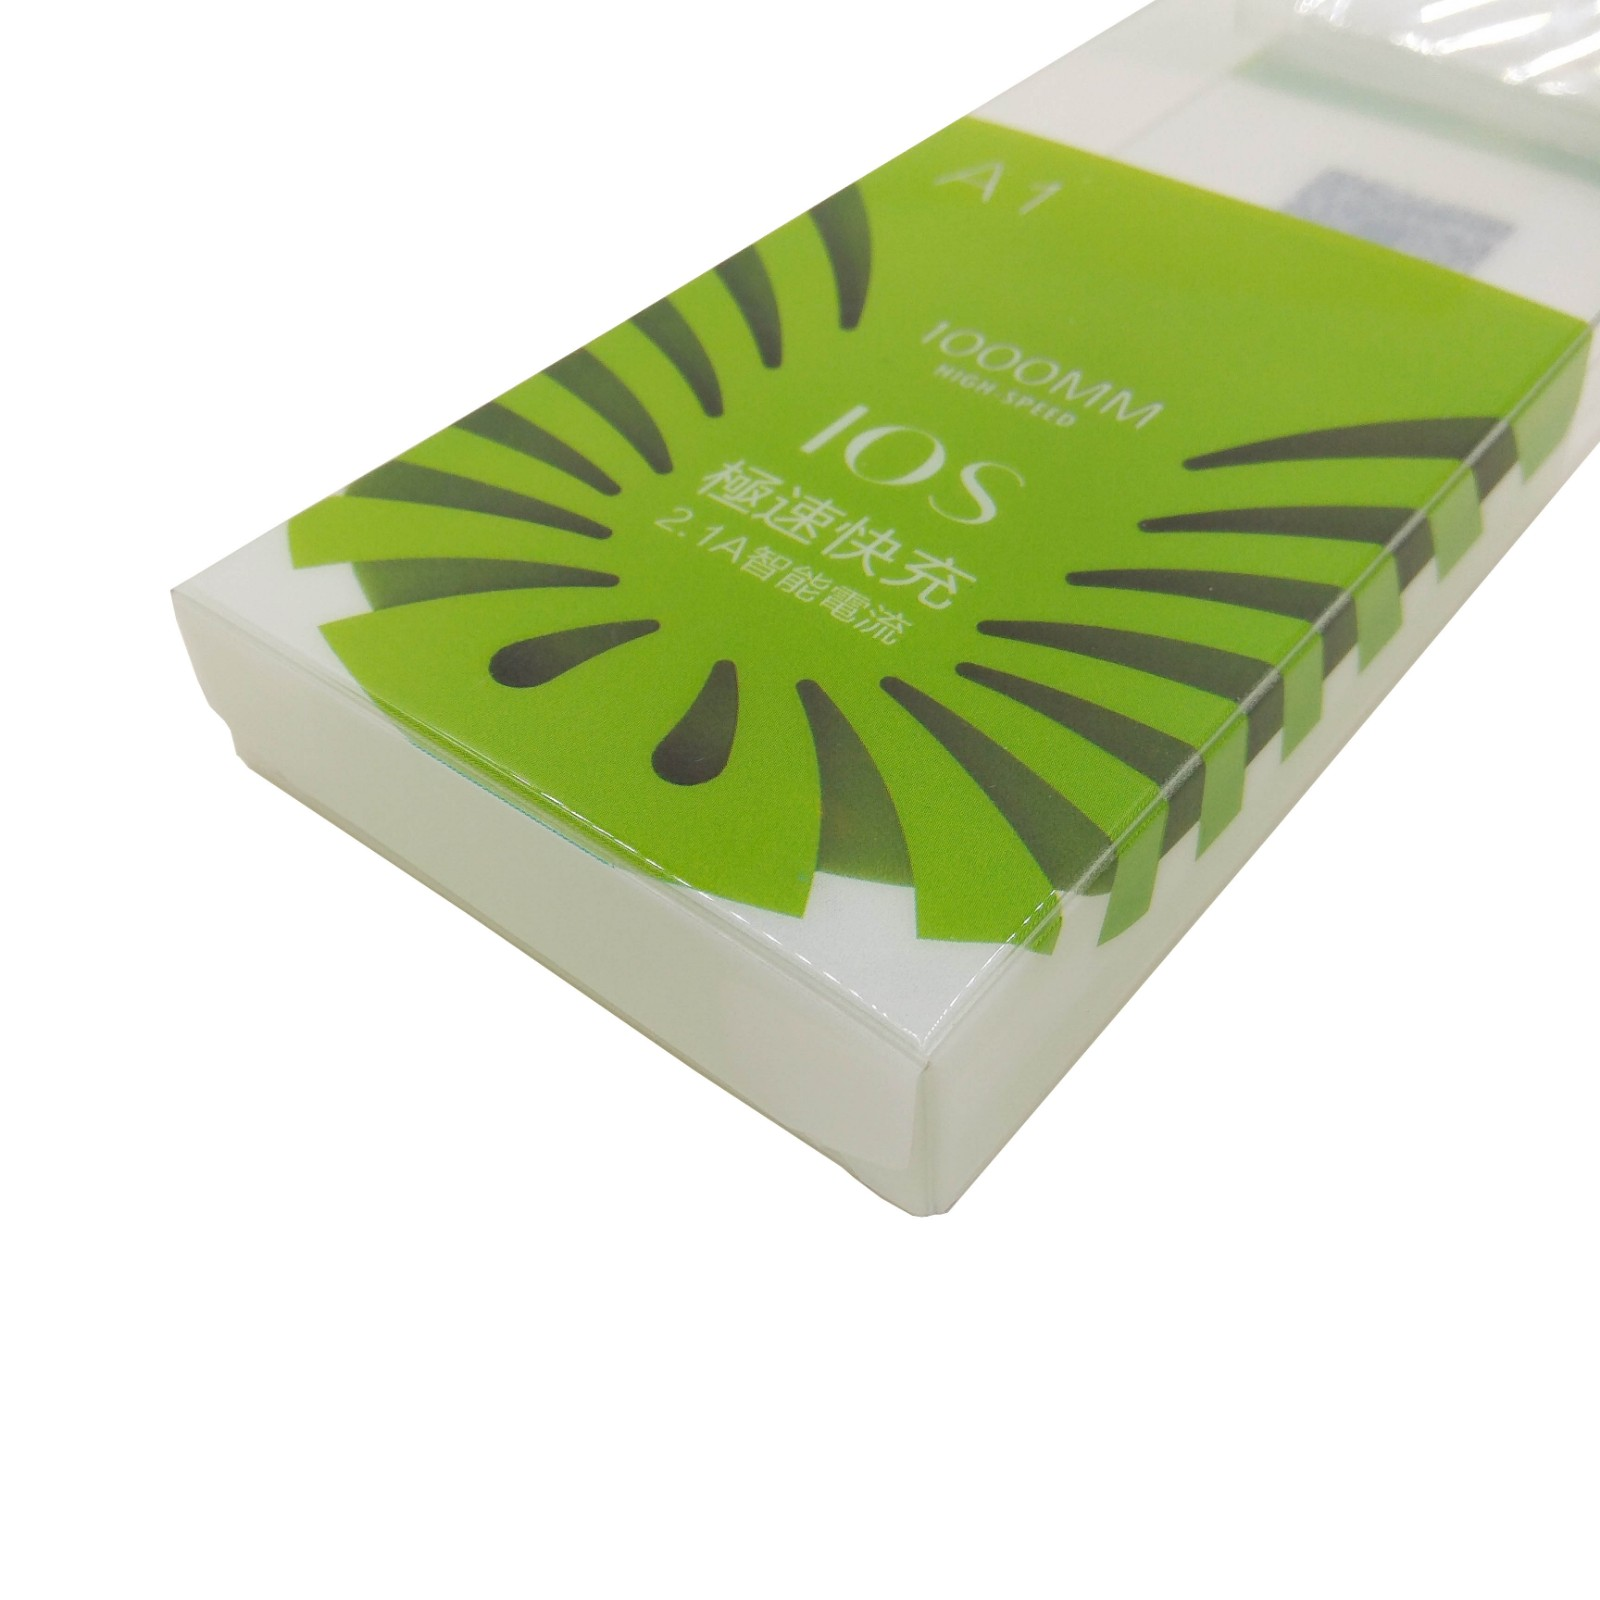 Yijianxing Plastic Products theme plastic box packaging at discount for candy-3